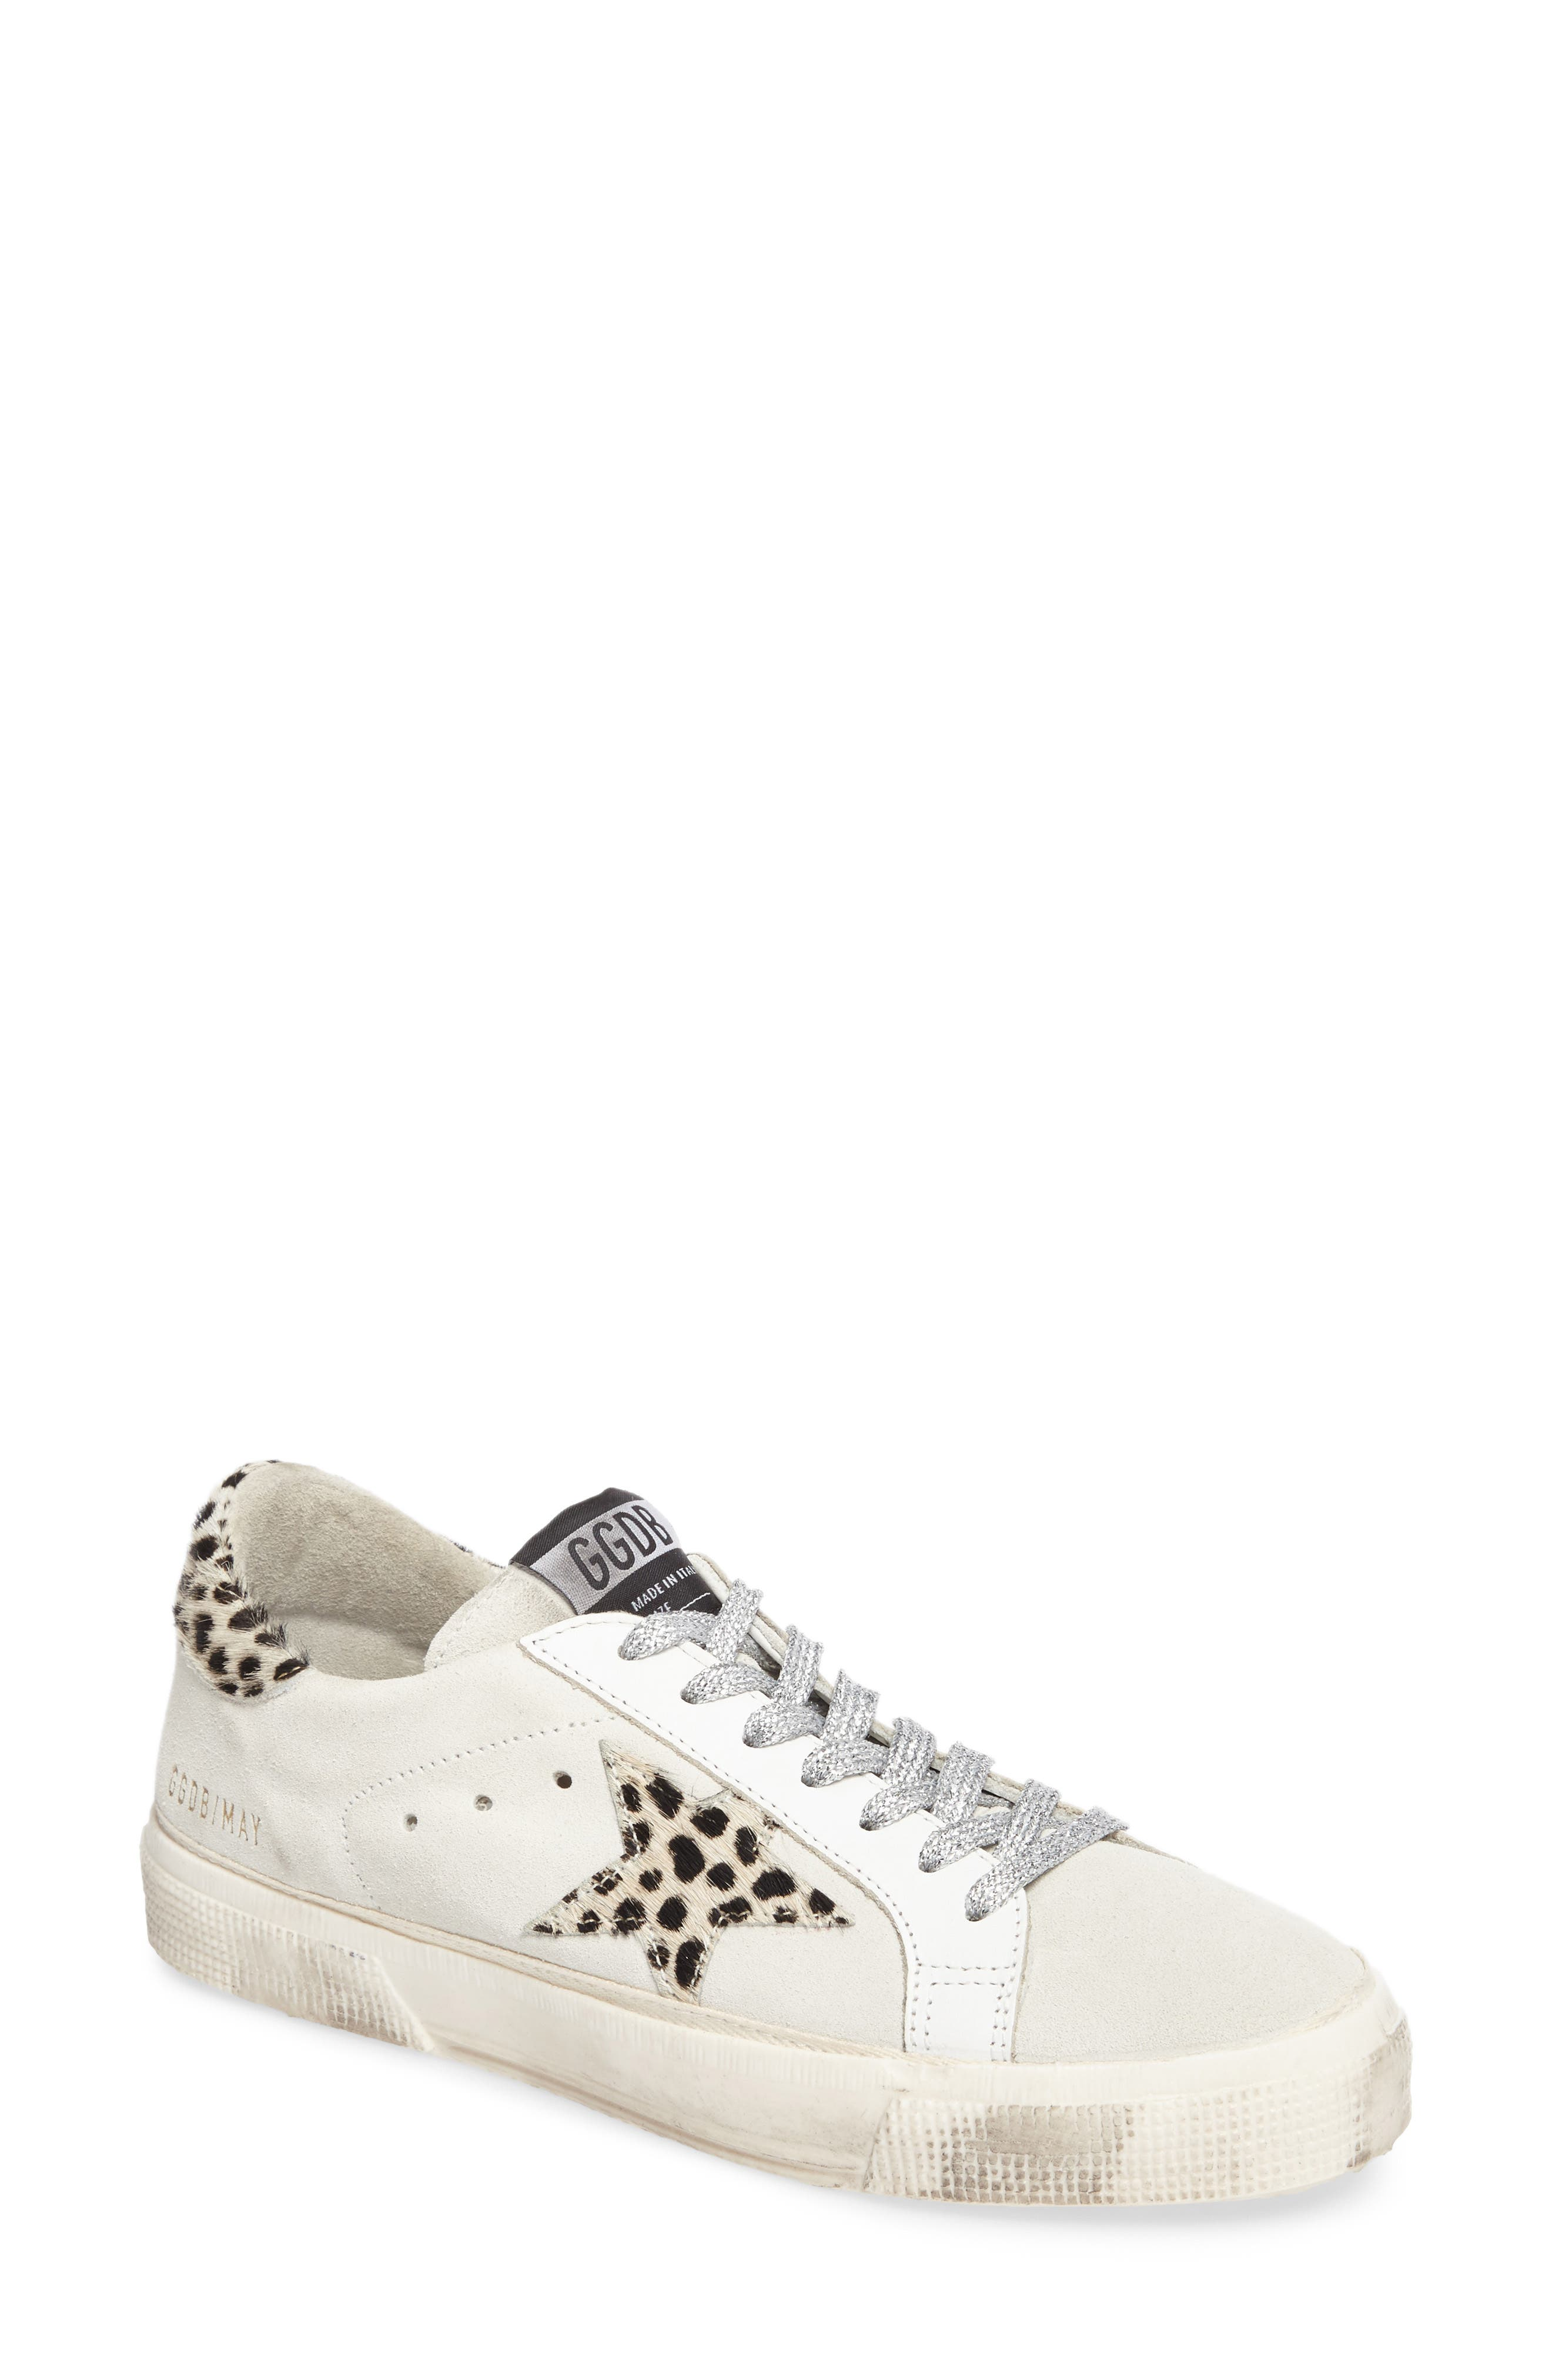 May Low Top Sneaker,                             Main thumbnail 1, color,                             White Suede/ Leopard